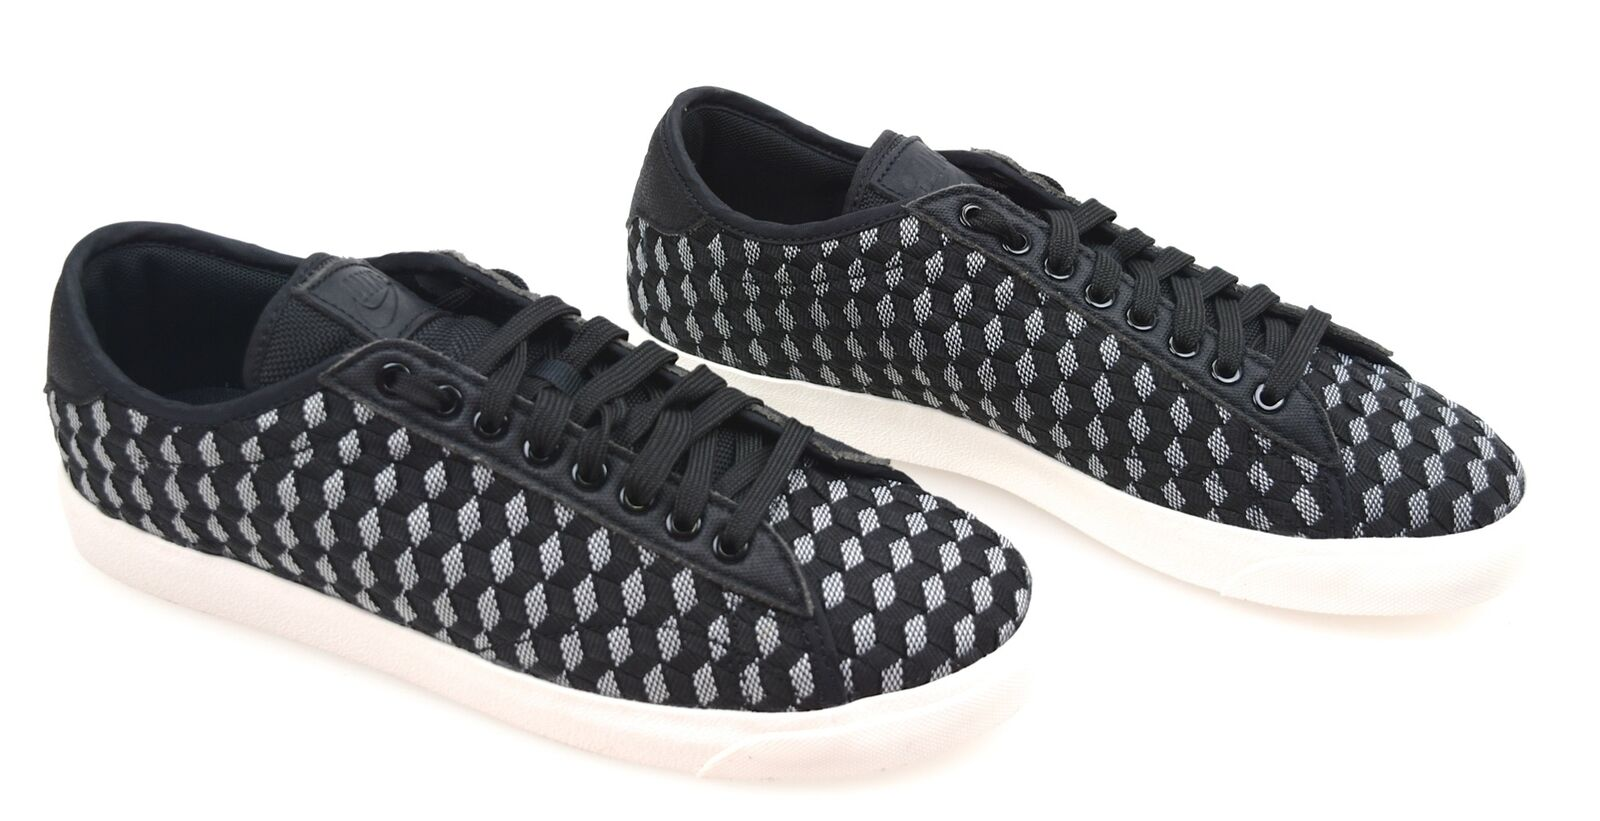 NIKE Homme SNEAKER Chaussures CASUAL FREE TIME CODE TENNIS CLASSIC AC WOVEN 724976 004